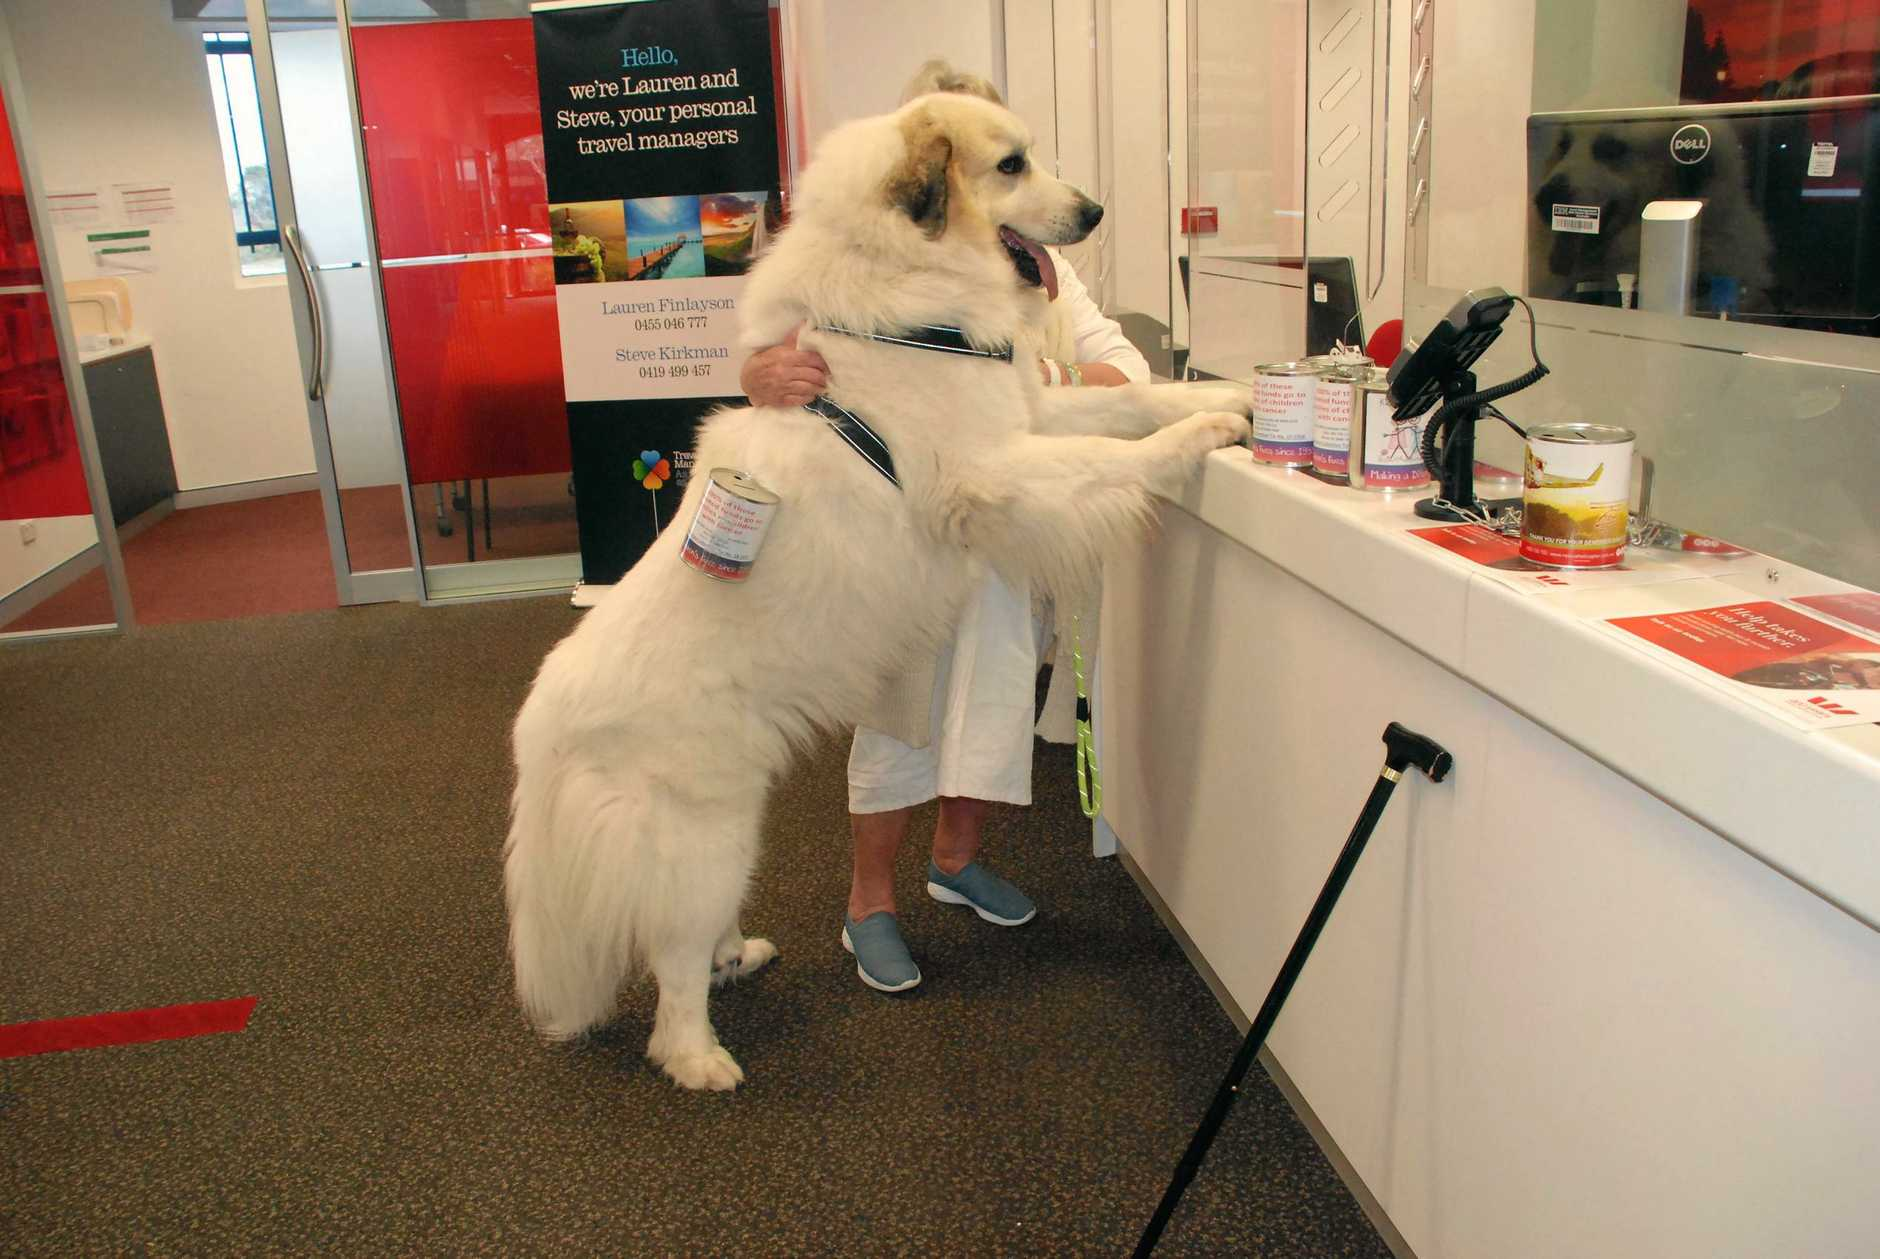 MIGHTY EFFORT: Aragorn, the Pyrenean mountain dog, raised more than $600 after his visit to Noosa.